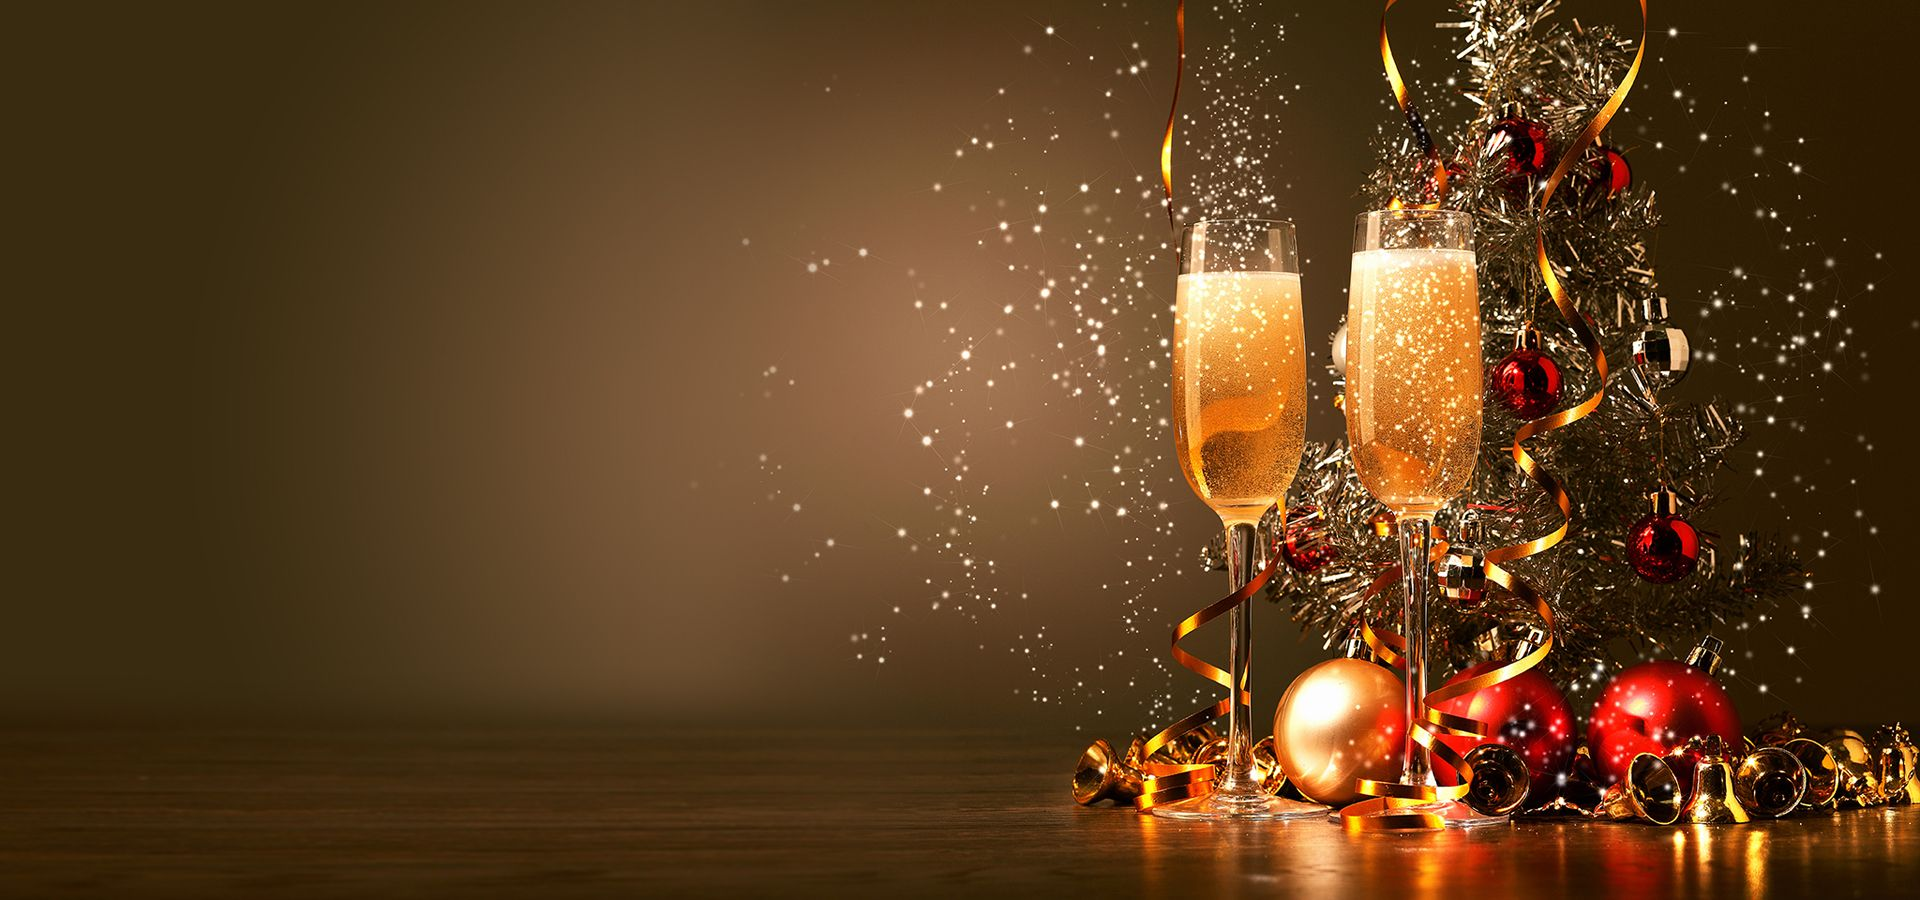 Colorful Festivals Champagne Background Christmas